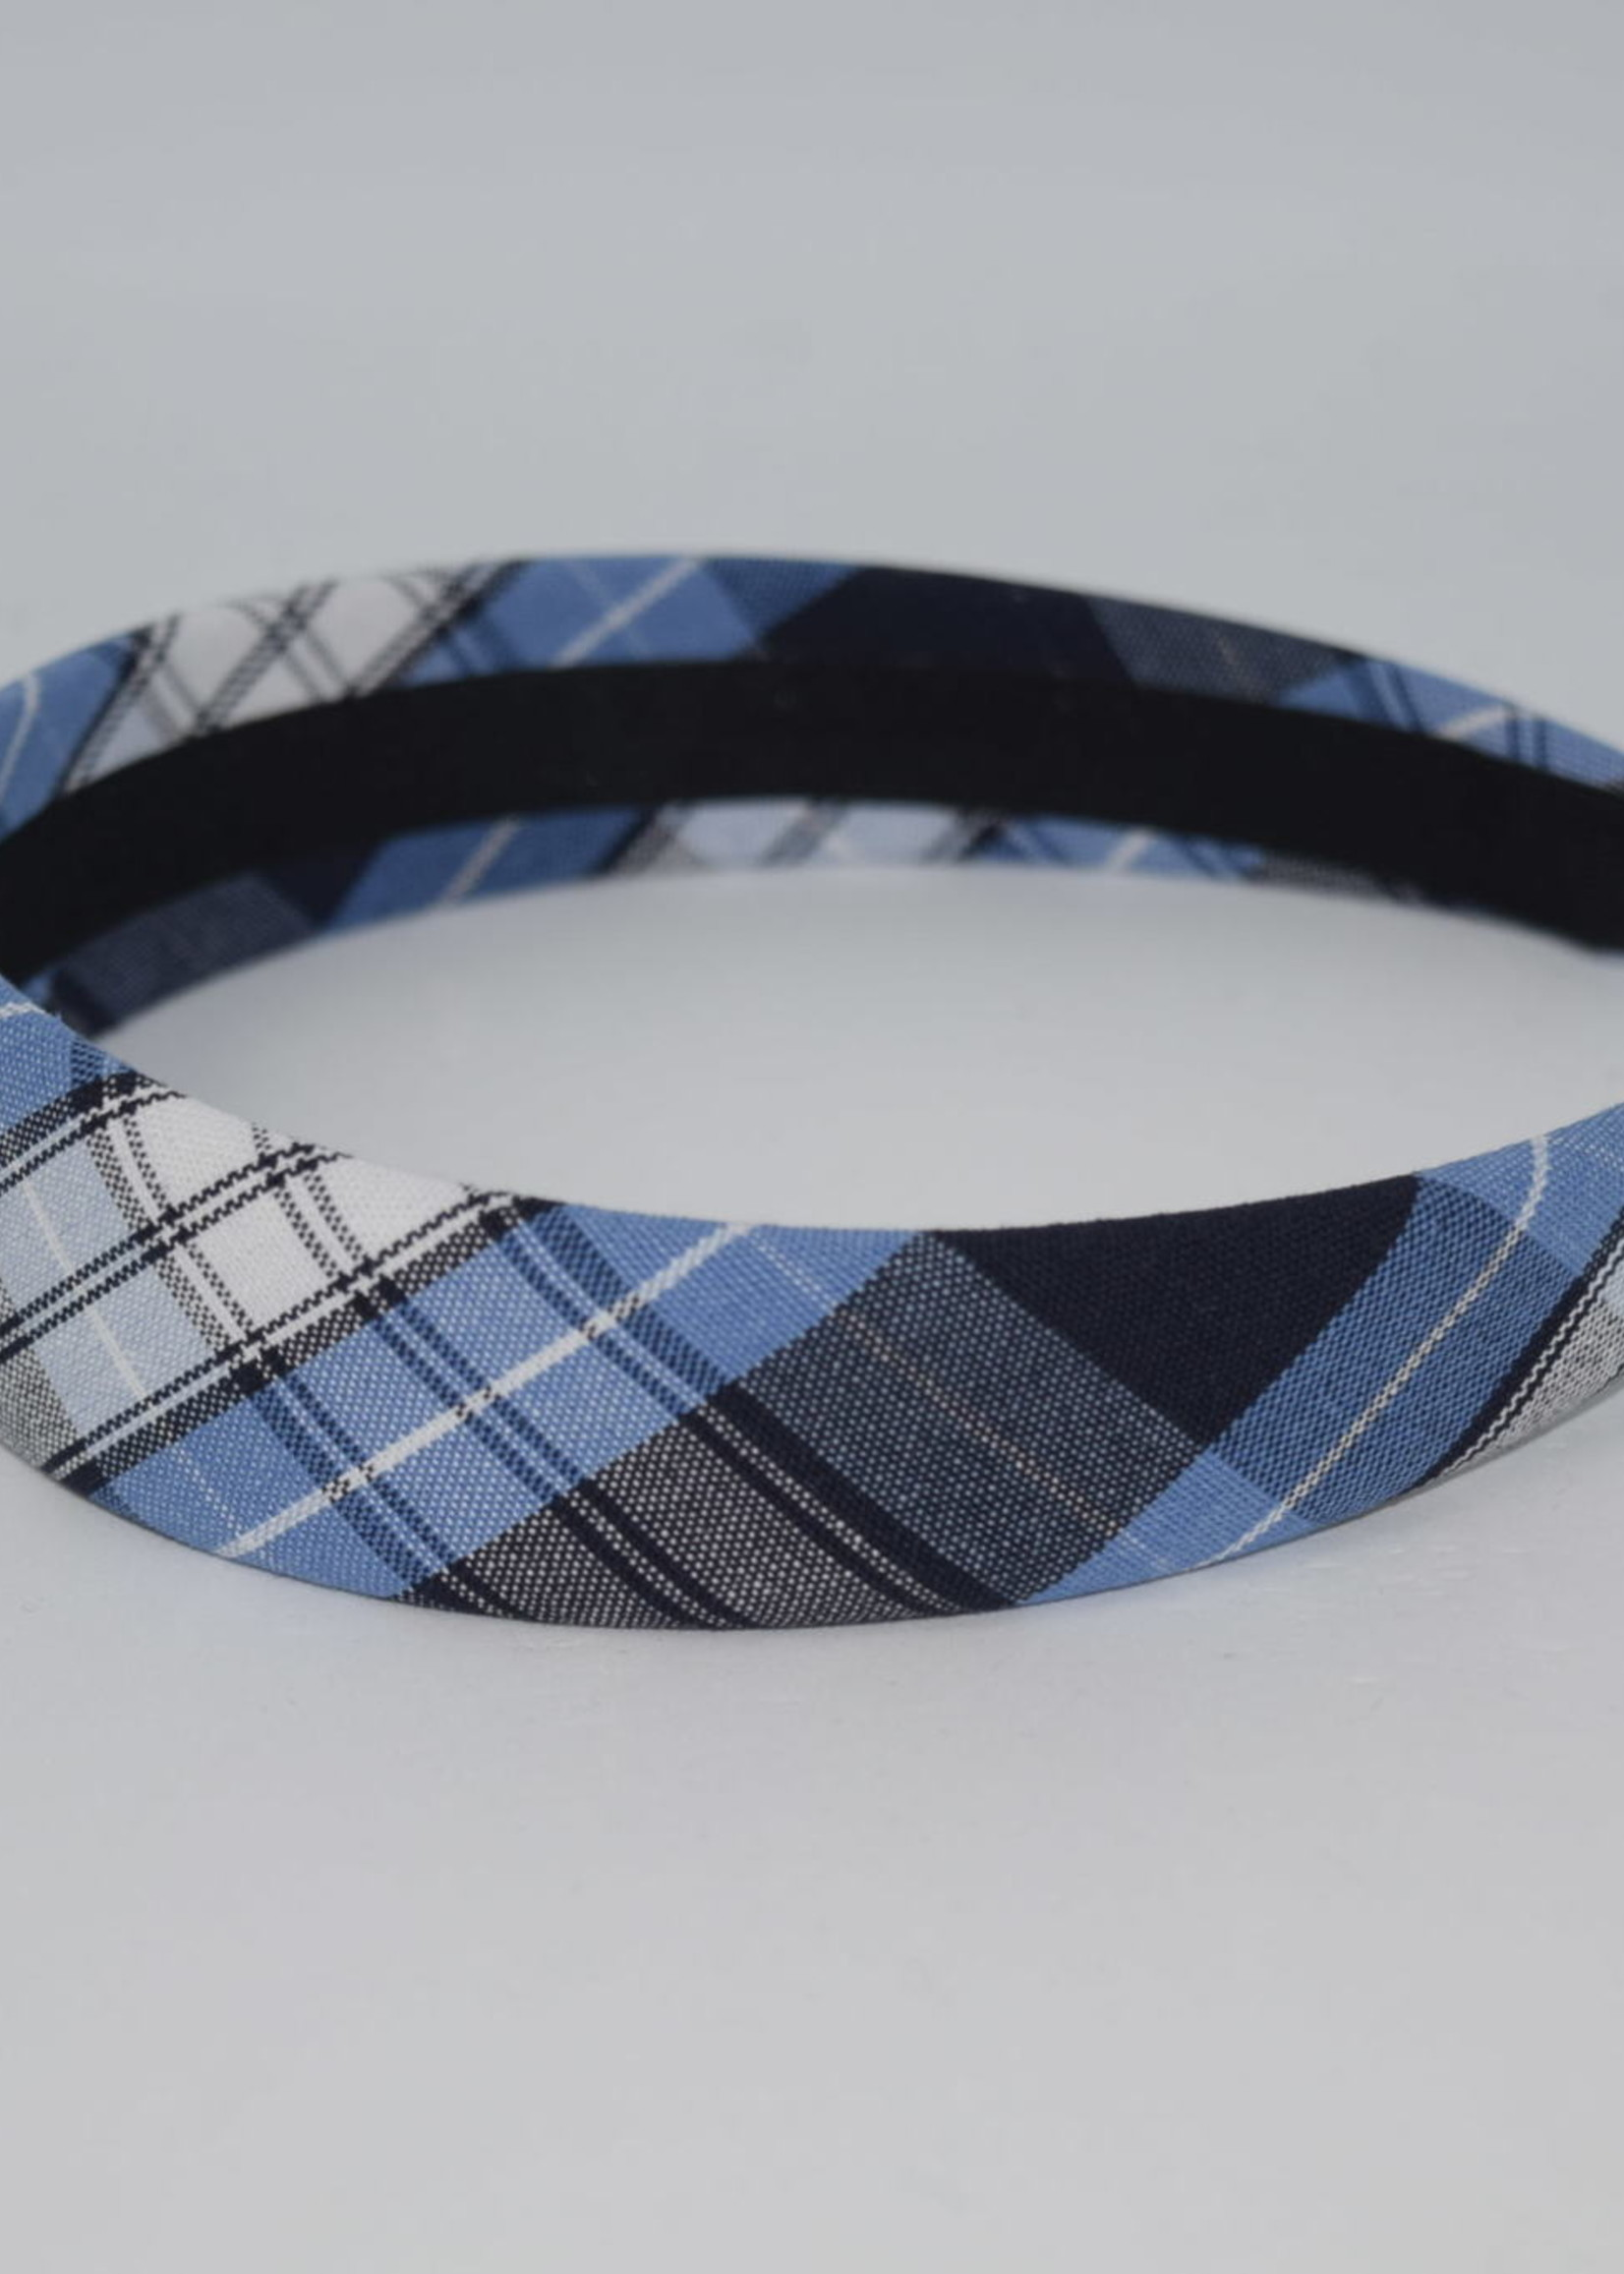 Wide padded headband w/out metal tips P76